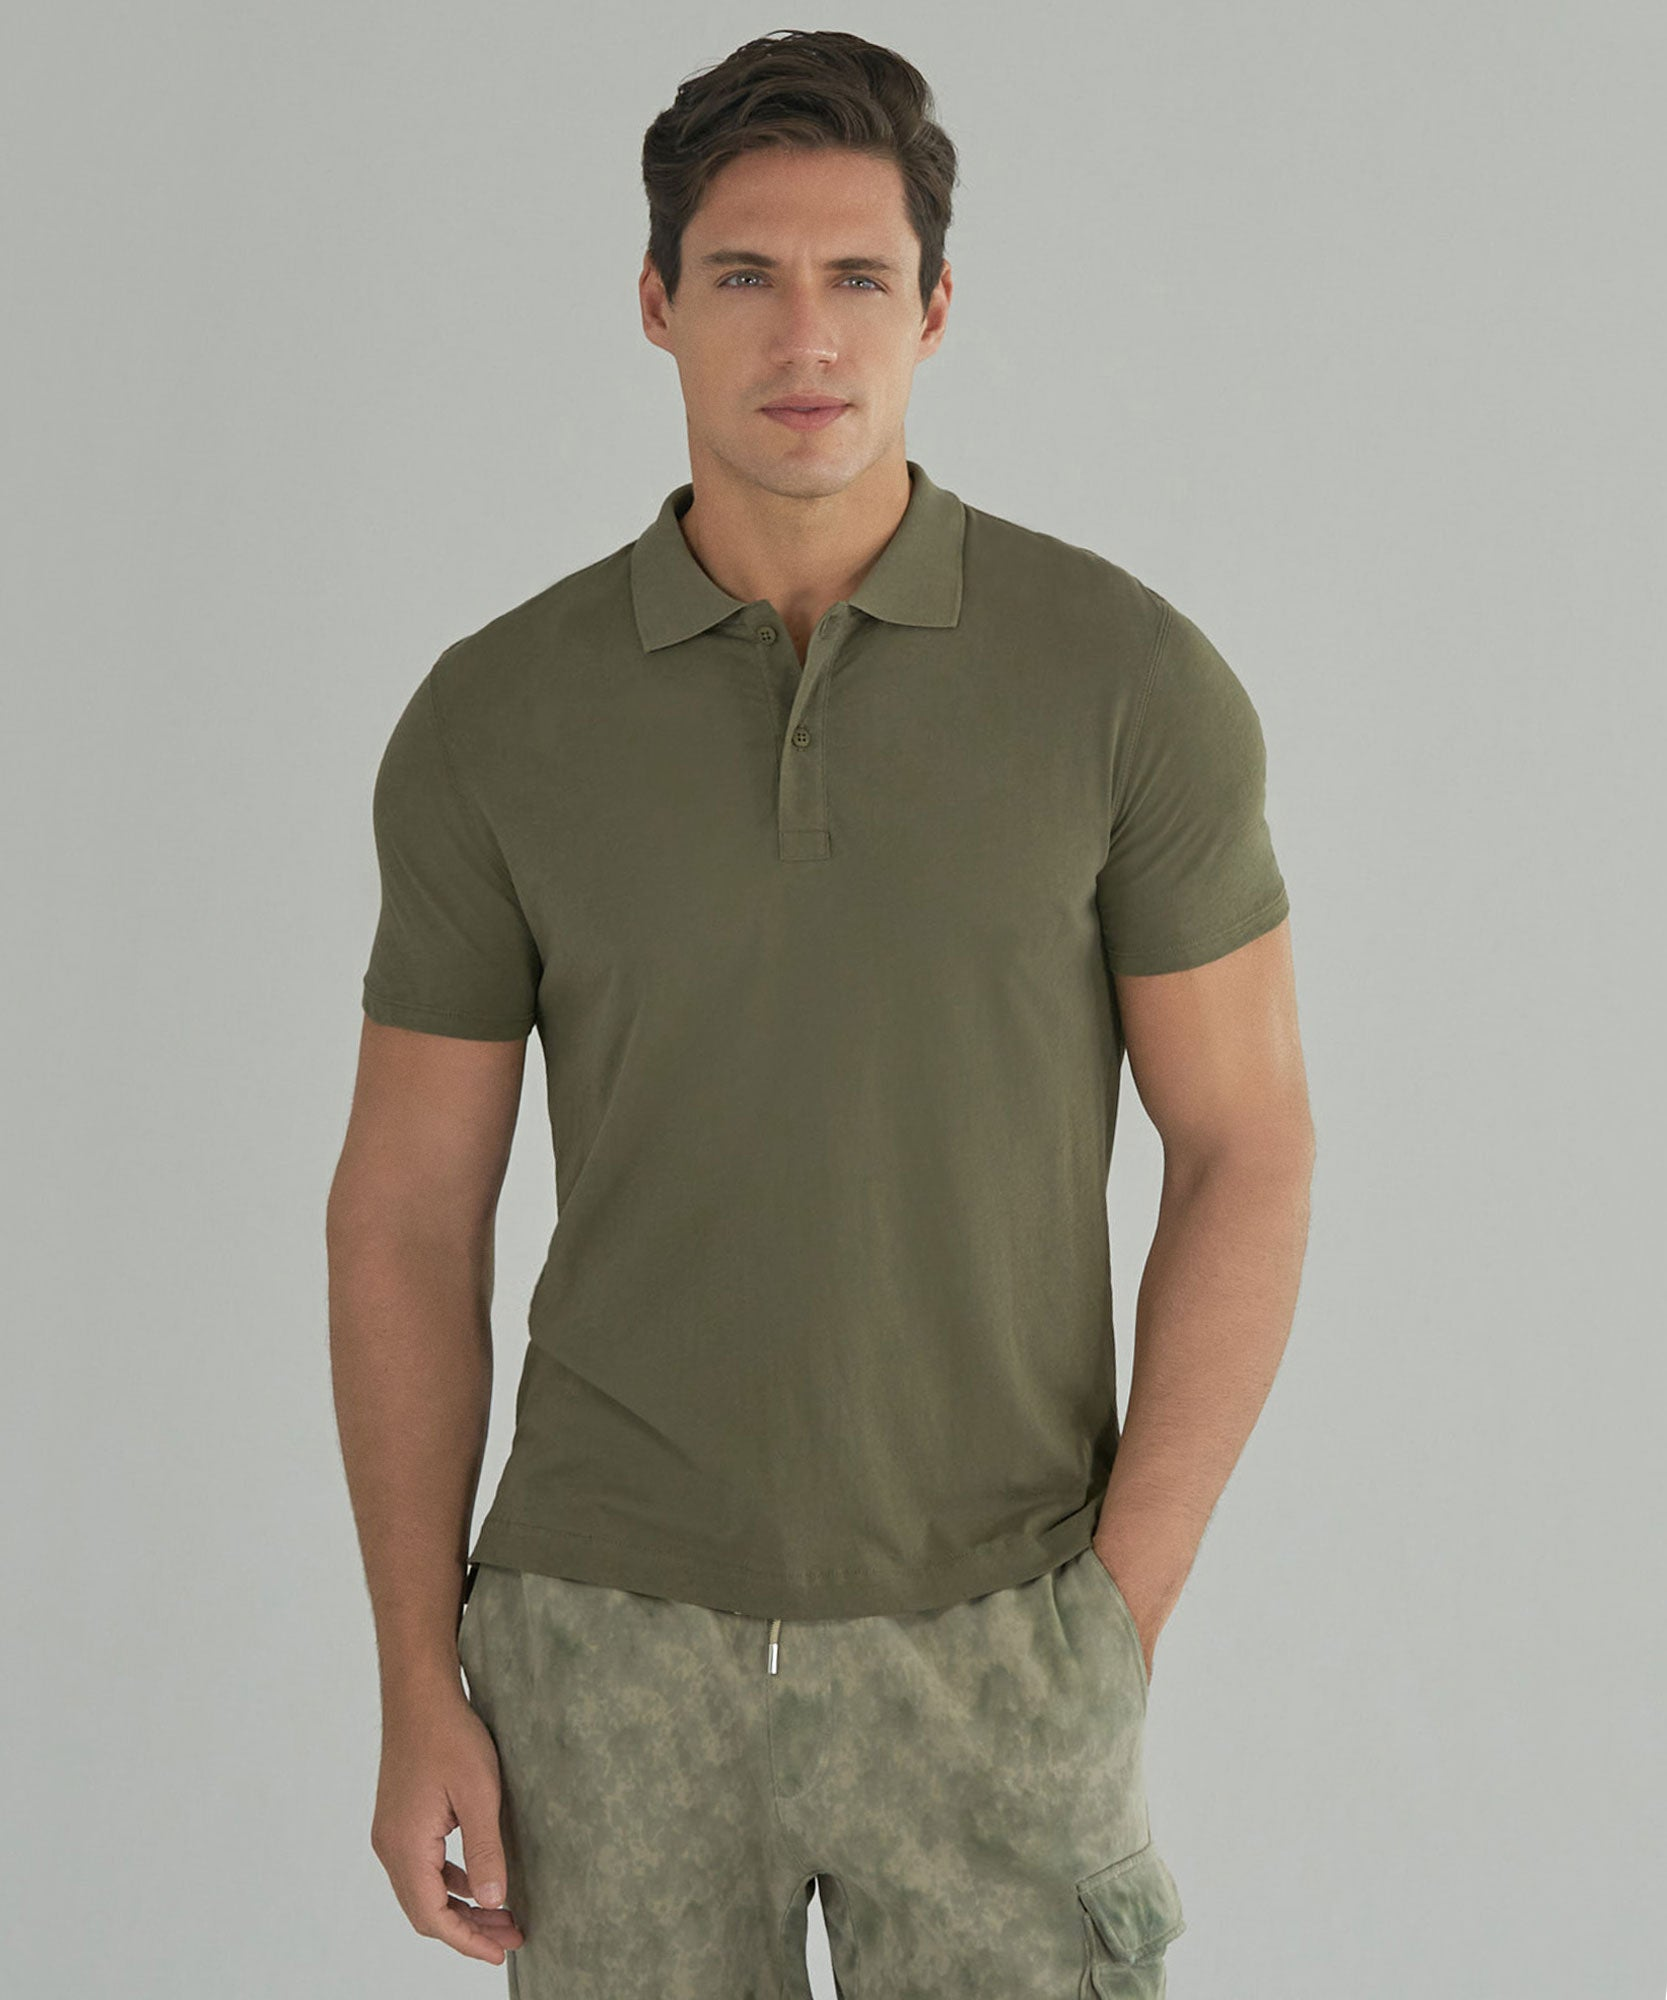 Army Classic Jersey Polo - Men's Short Sleeve Shirt by ATM Anthony Thomas Melillo